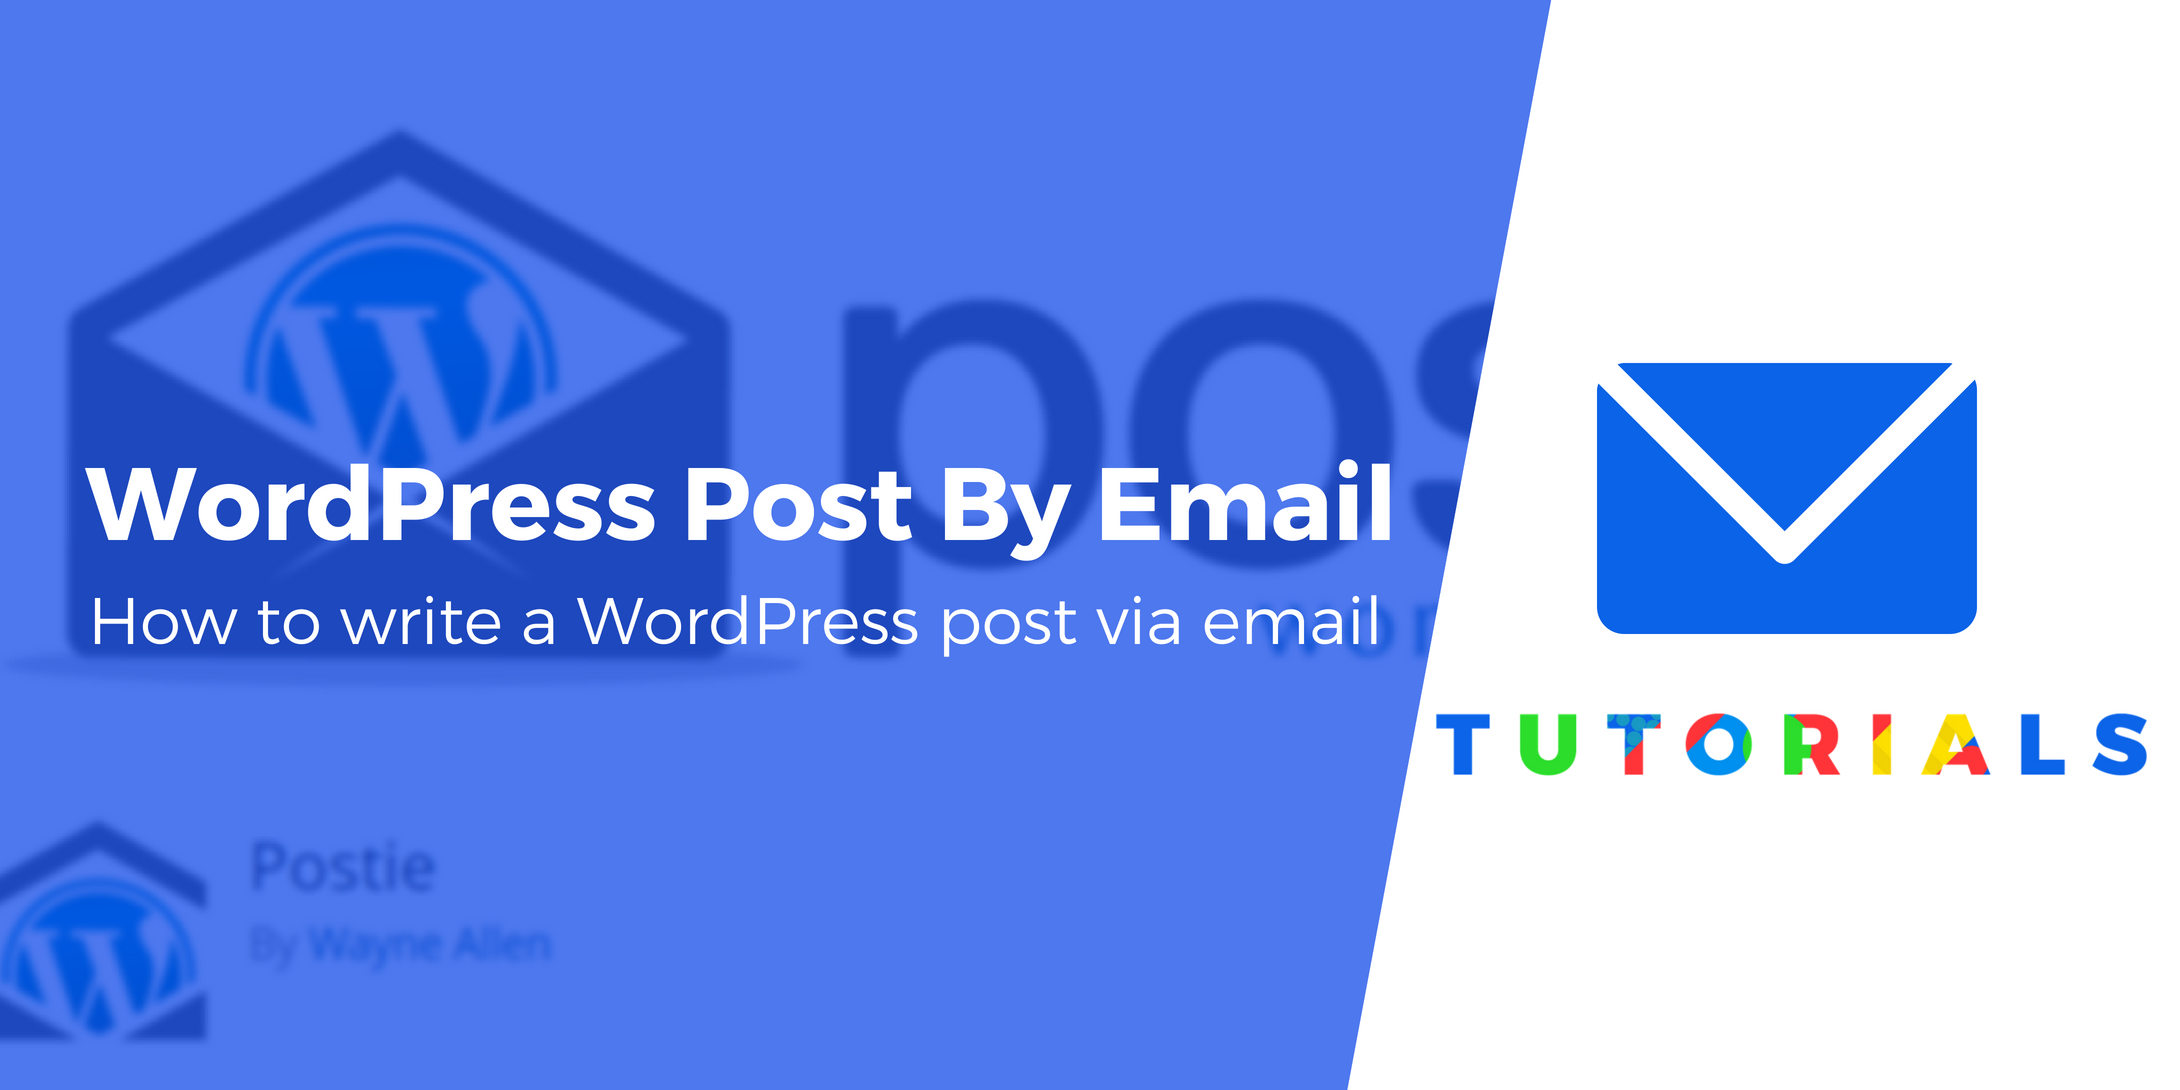 wordpress post by email